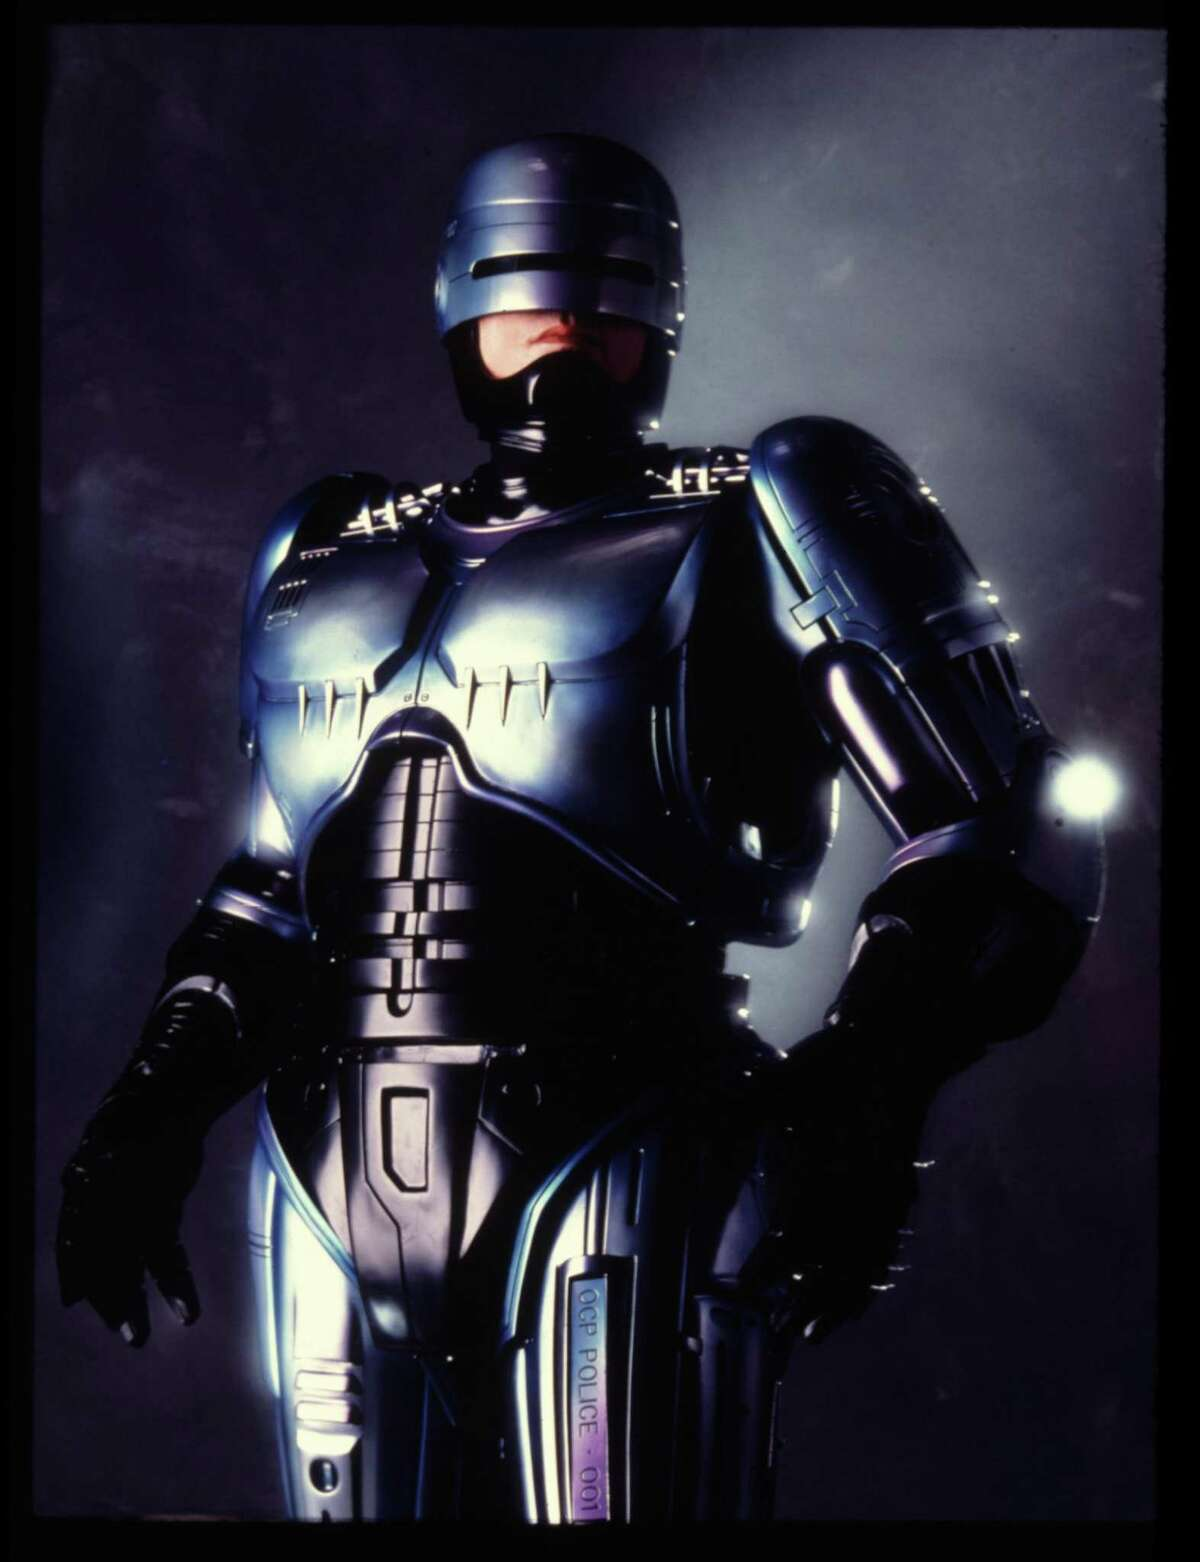 Peter Weller as Robocop. Robocop 2. an Orion Pictures Corp film 1990. photo by: William Hawkes